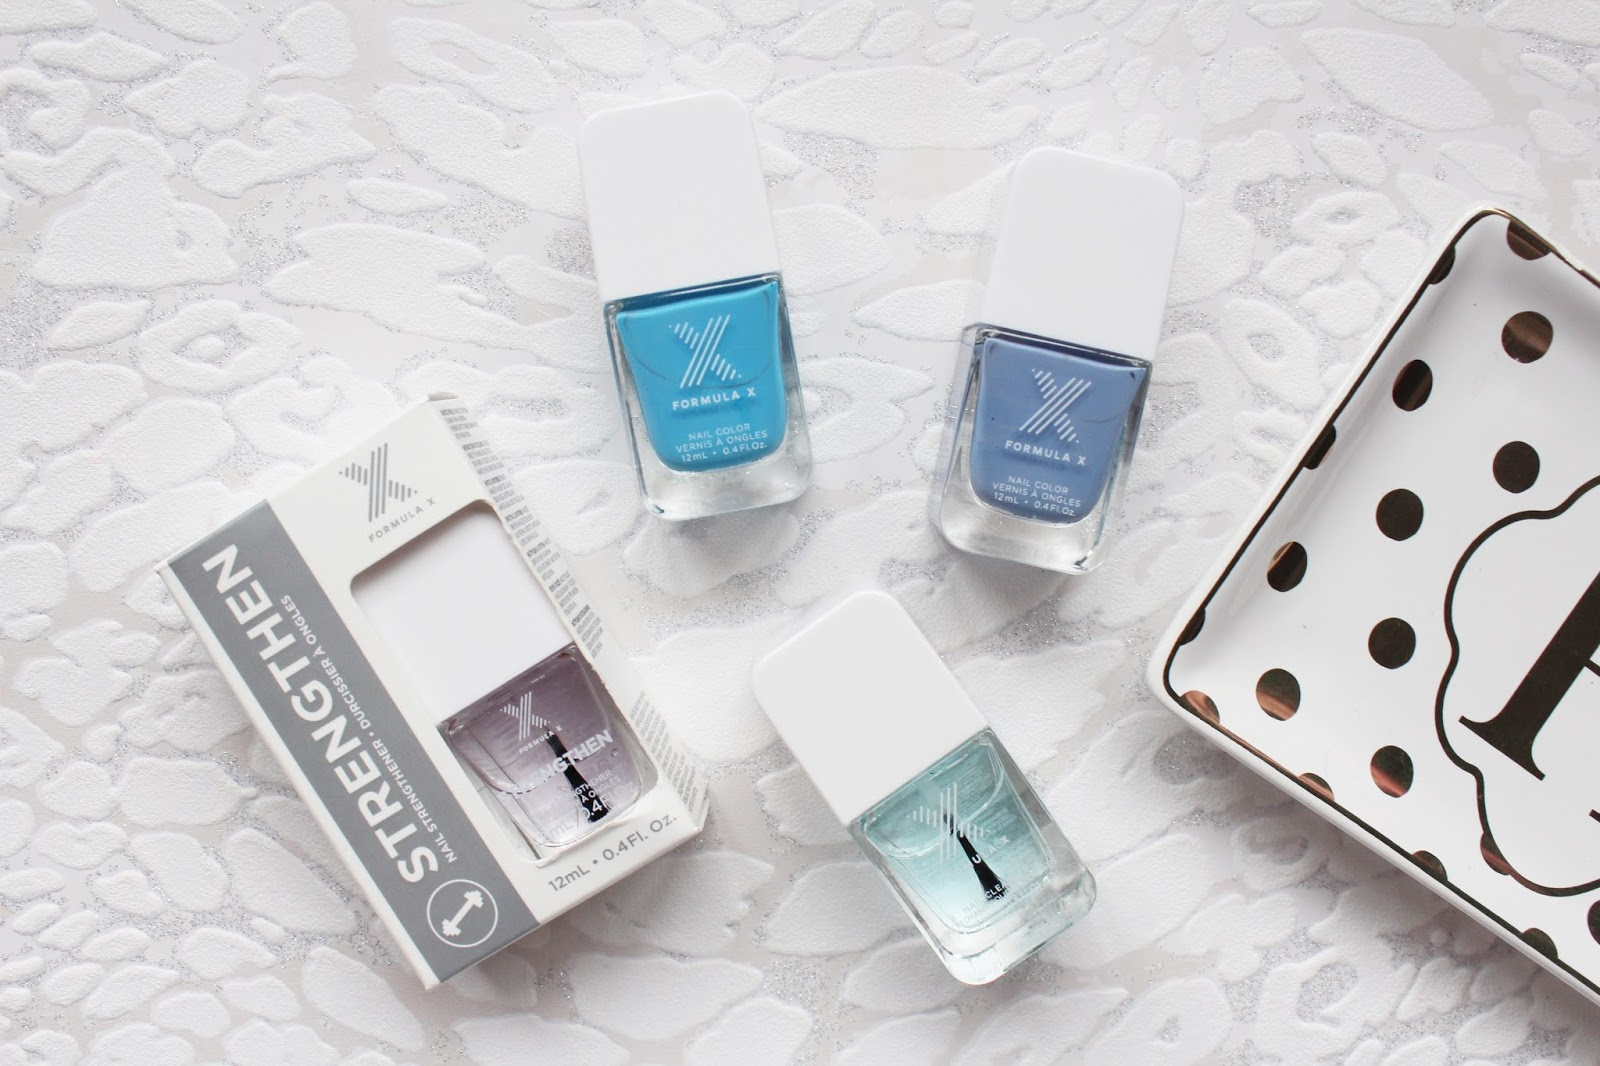 Formula X Polishes & Treatments Review